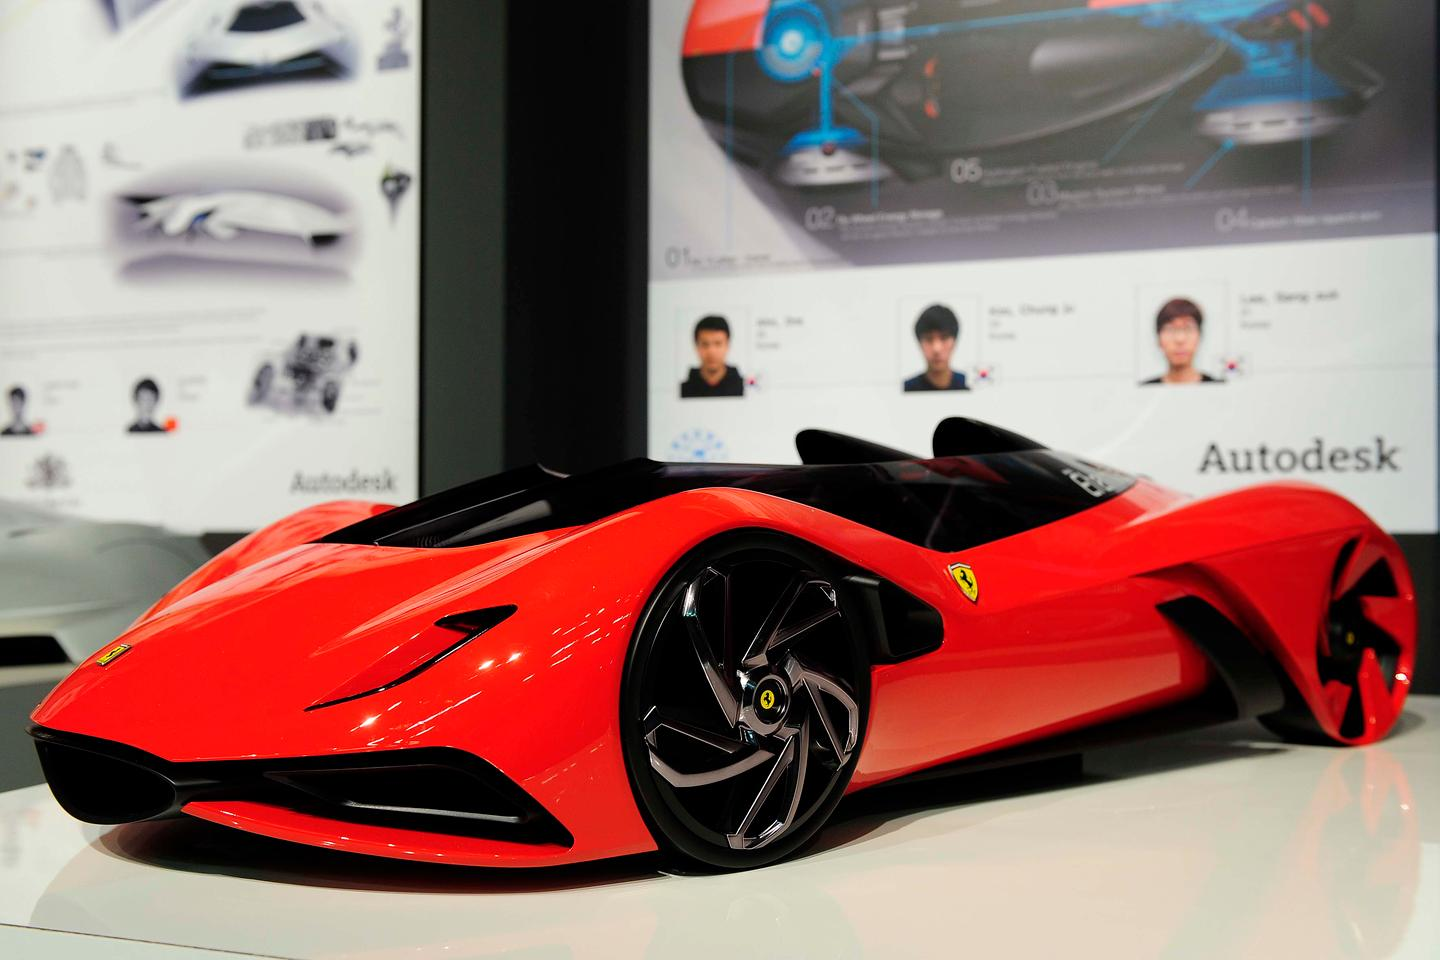 'Eternita,' the winning entry for this year's Ferrari World Design Contest